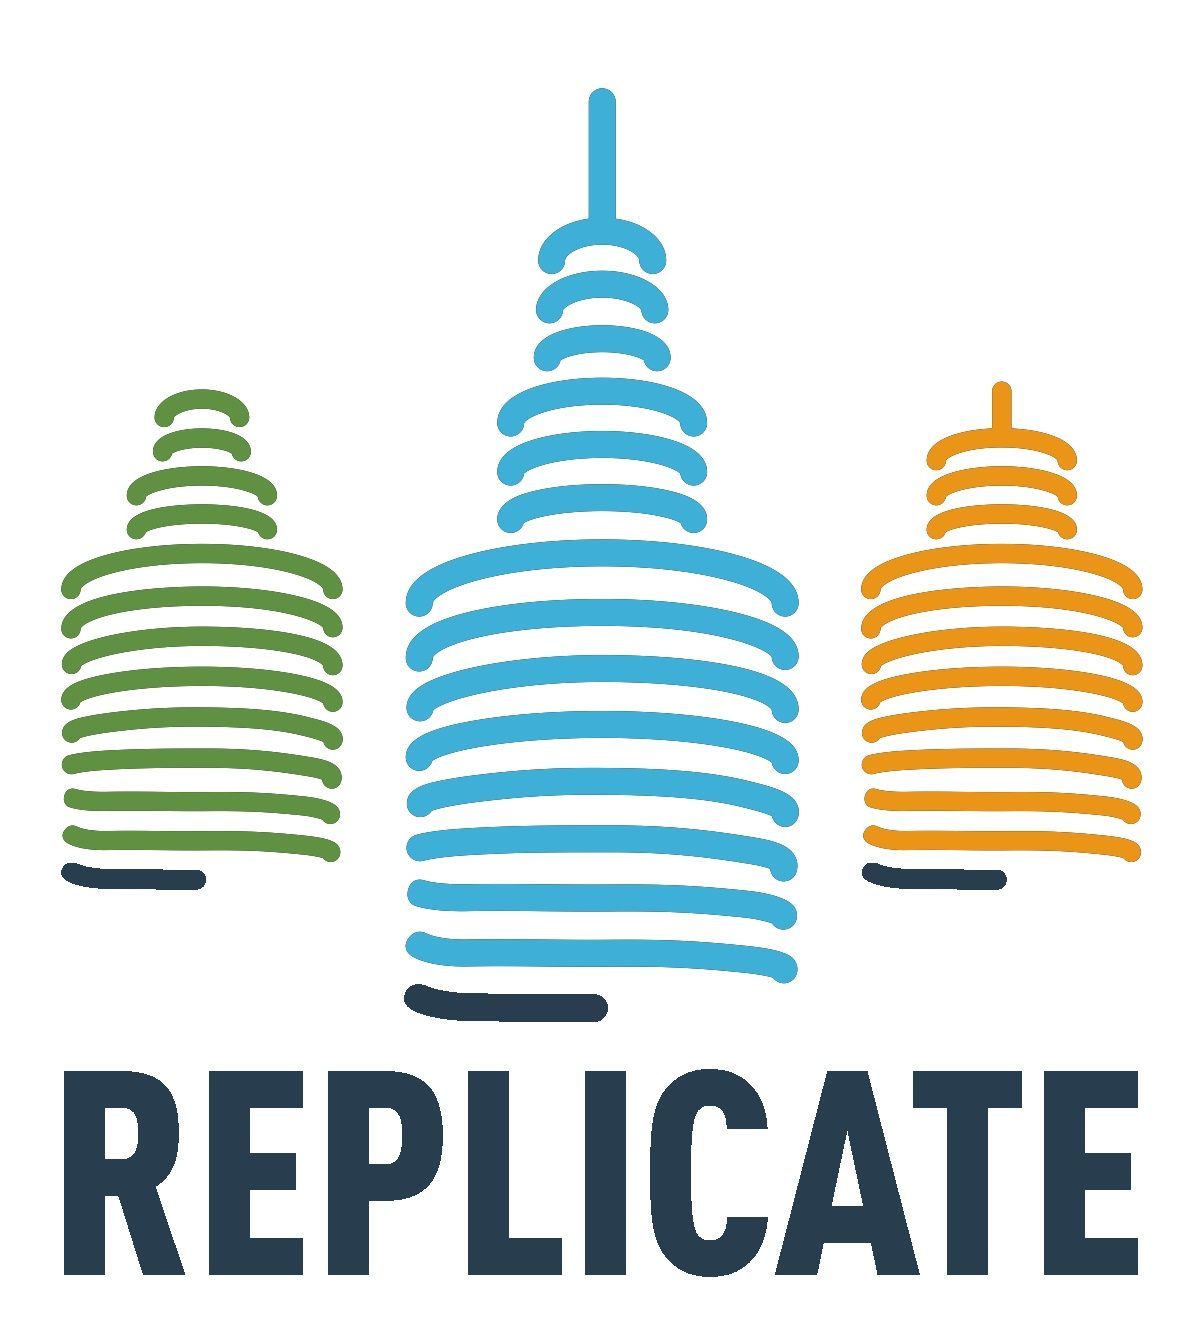 REPLICATE OFFICIAL LOGO HR